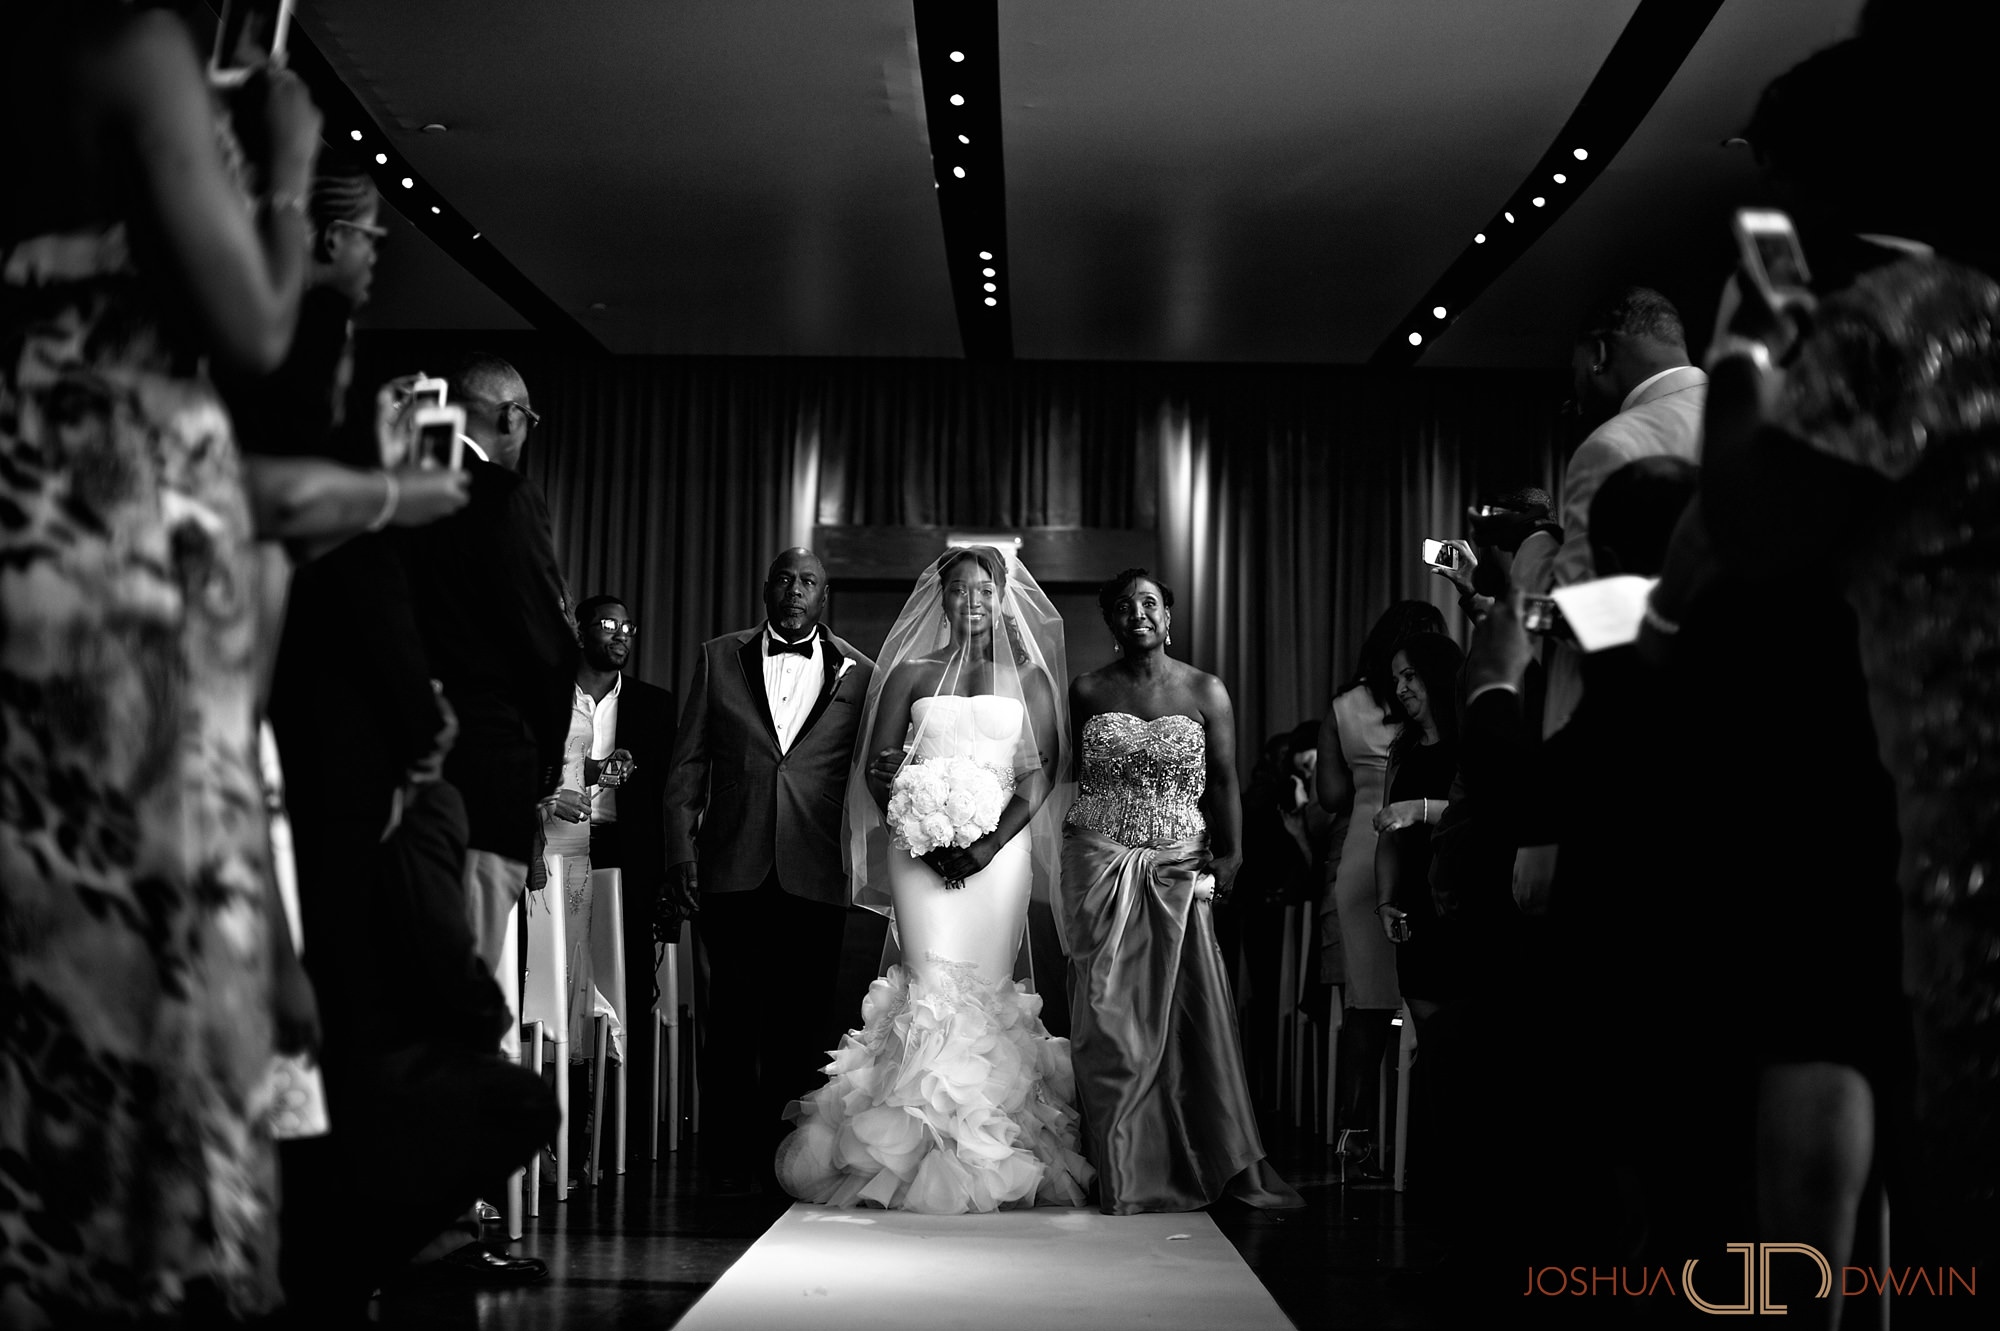 tasha-marcus-014-one-atlantic-atlantic-city-nj-wedding-photographer-joshua-dwain-tasha-marcus-021-one-atlantic-atlantic-city-nj-wedding-photographer-joshua-dwain-2012-05-27_tm_333